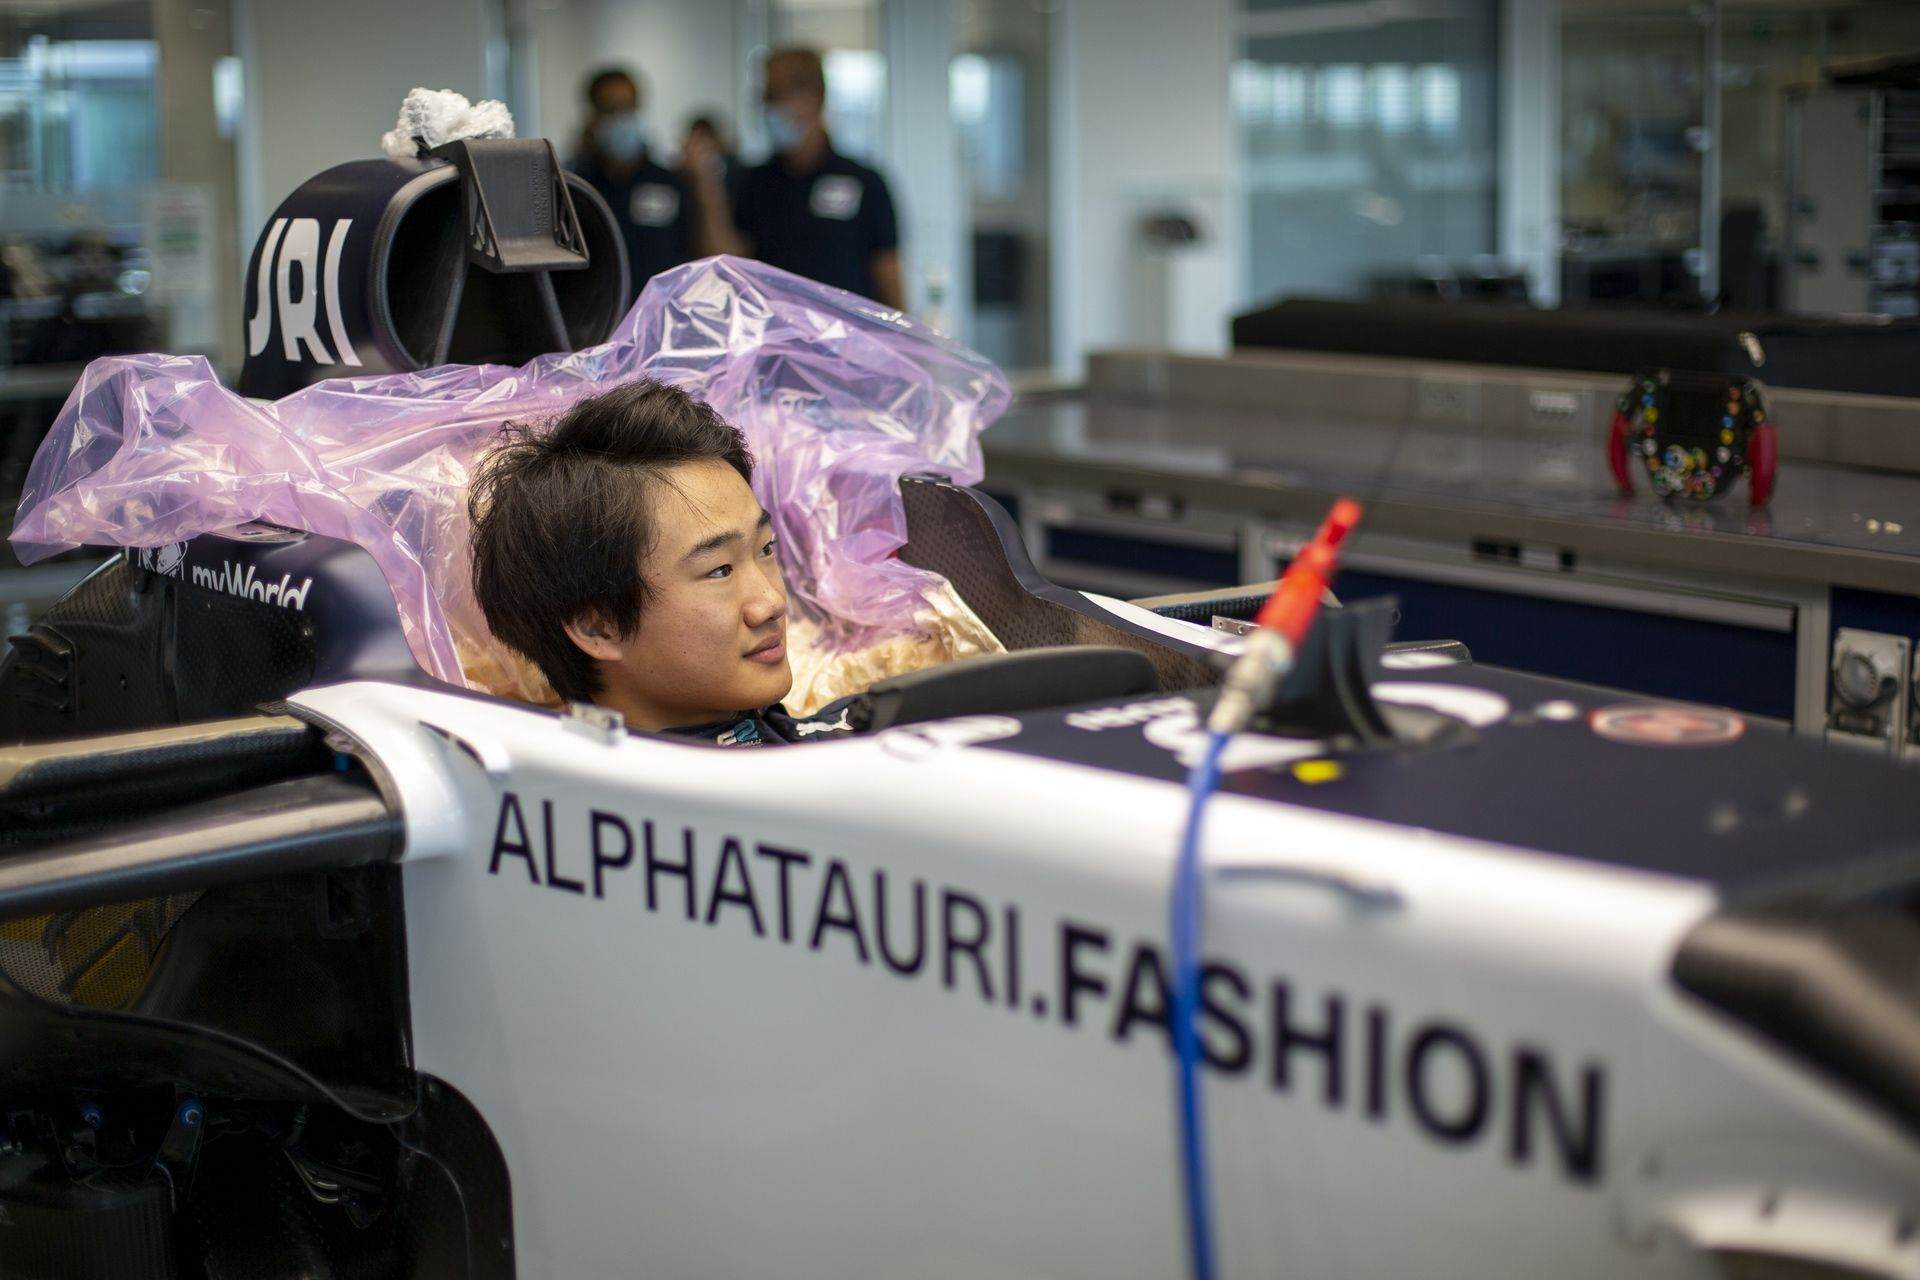 FAENZA, ITALY - OCTOBER 14: Yuki Tsunoda of Japan completes his seat fit at the Scuderia AlphaTauri factory on October 14, 2020 in Faenza, Italy. (Photo by Josh Kruse/Scuderia AlphaTauri) // Josh Kruse / Scuderia AlphaTauri / Red Bull Content Pool // SI202010140211 // Usage for editorial use only //